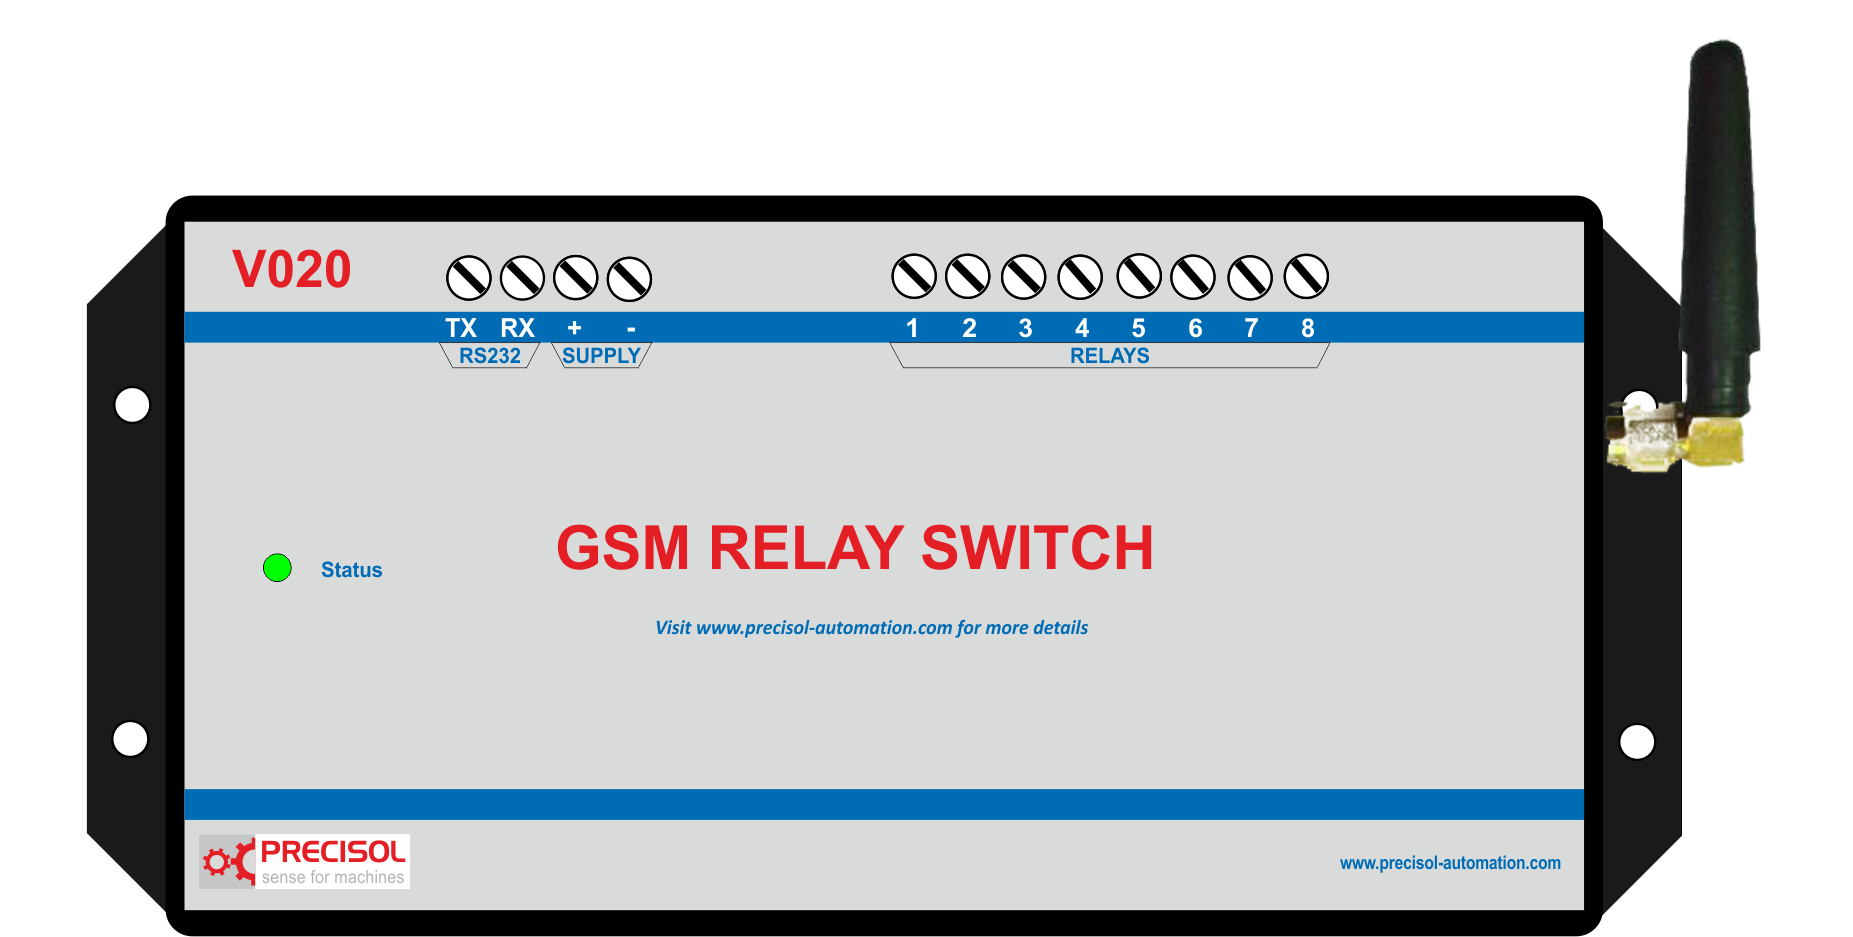 Gsm Relay Switches For Sms Controlled Relays And Electronic On Off Power Timer Au101 Usb Data Acquisition Device